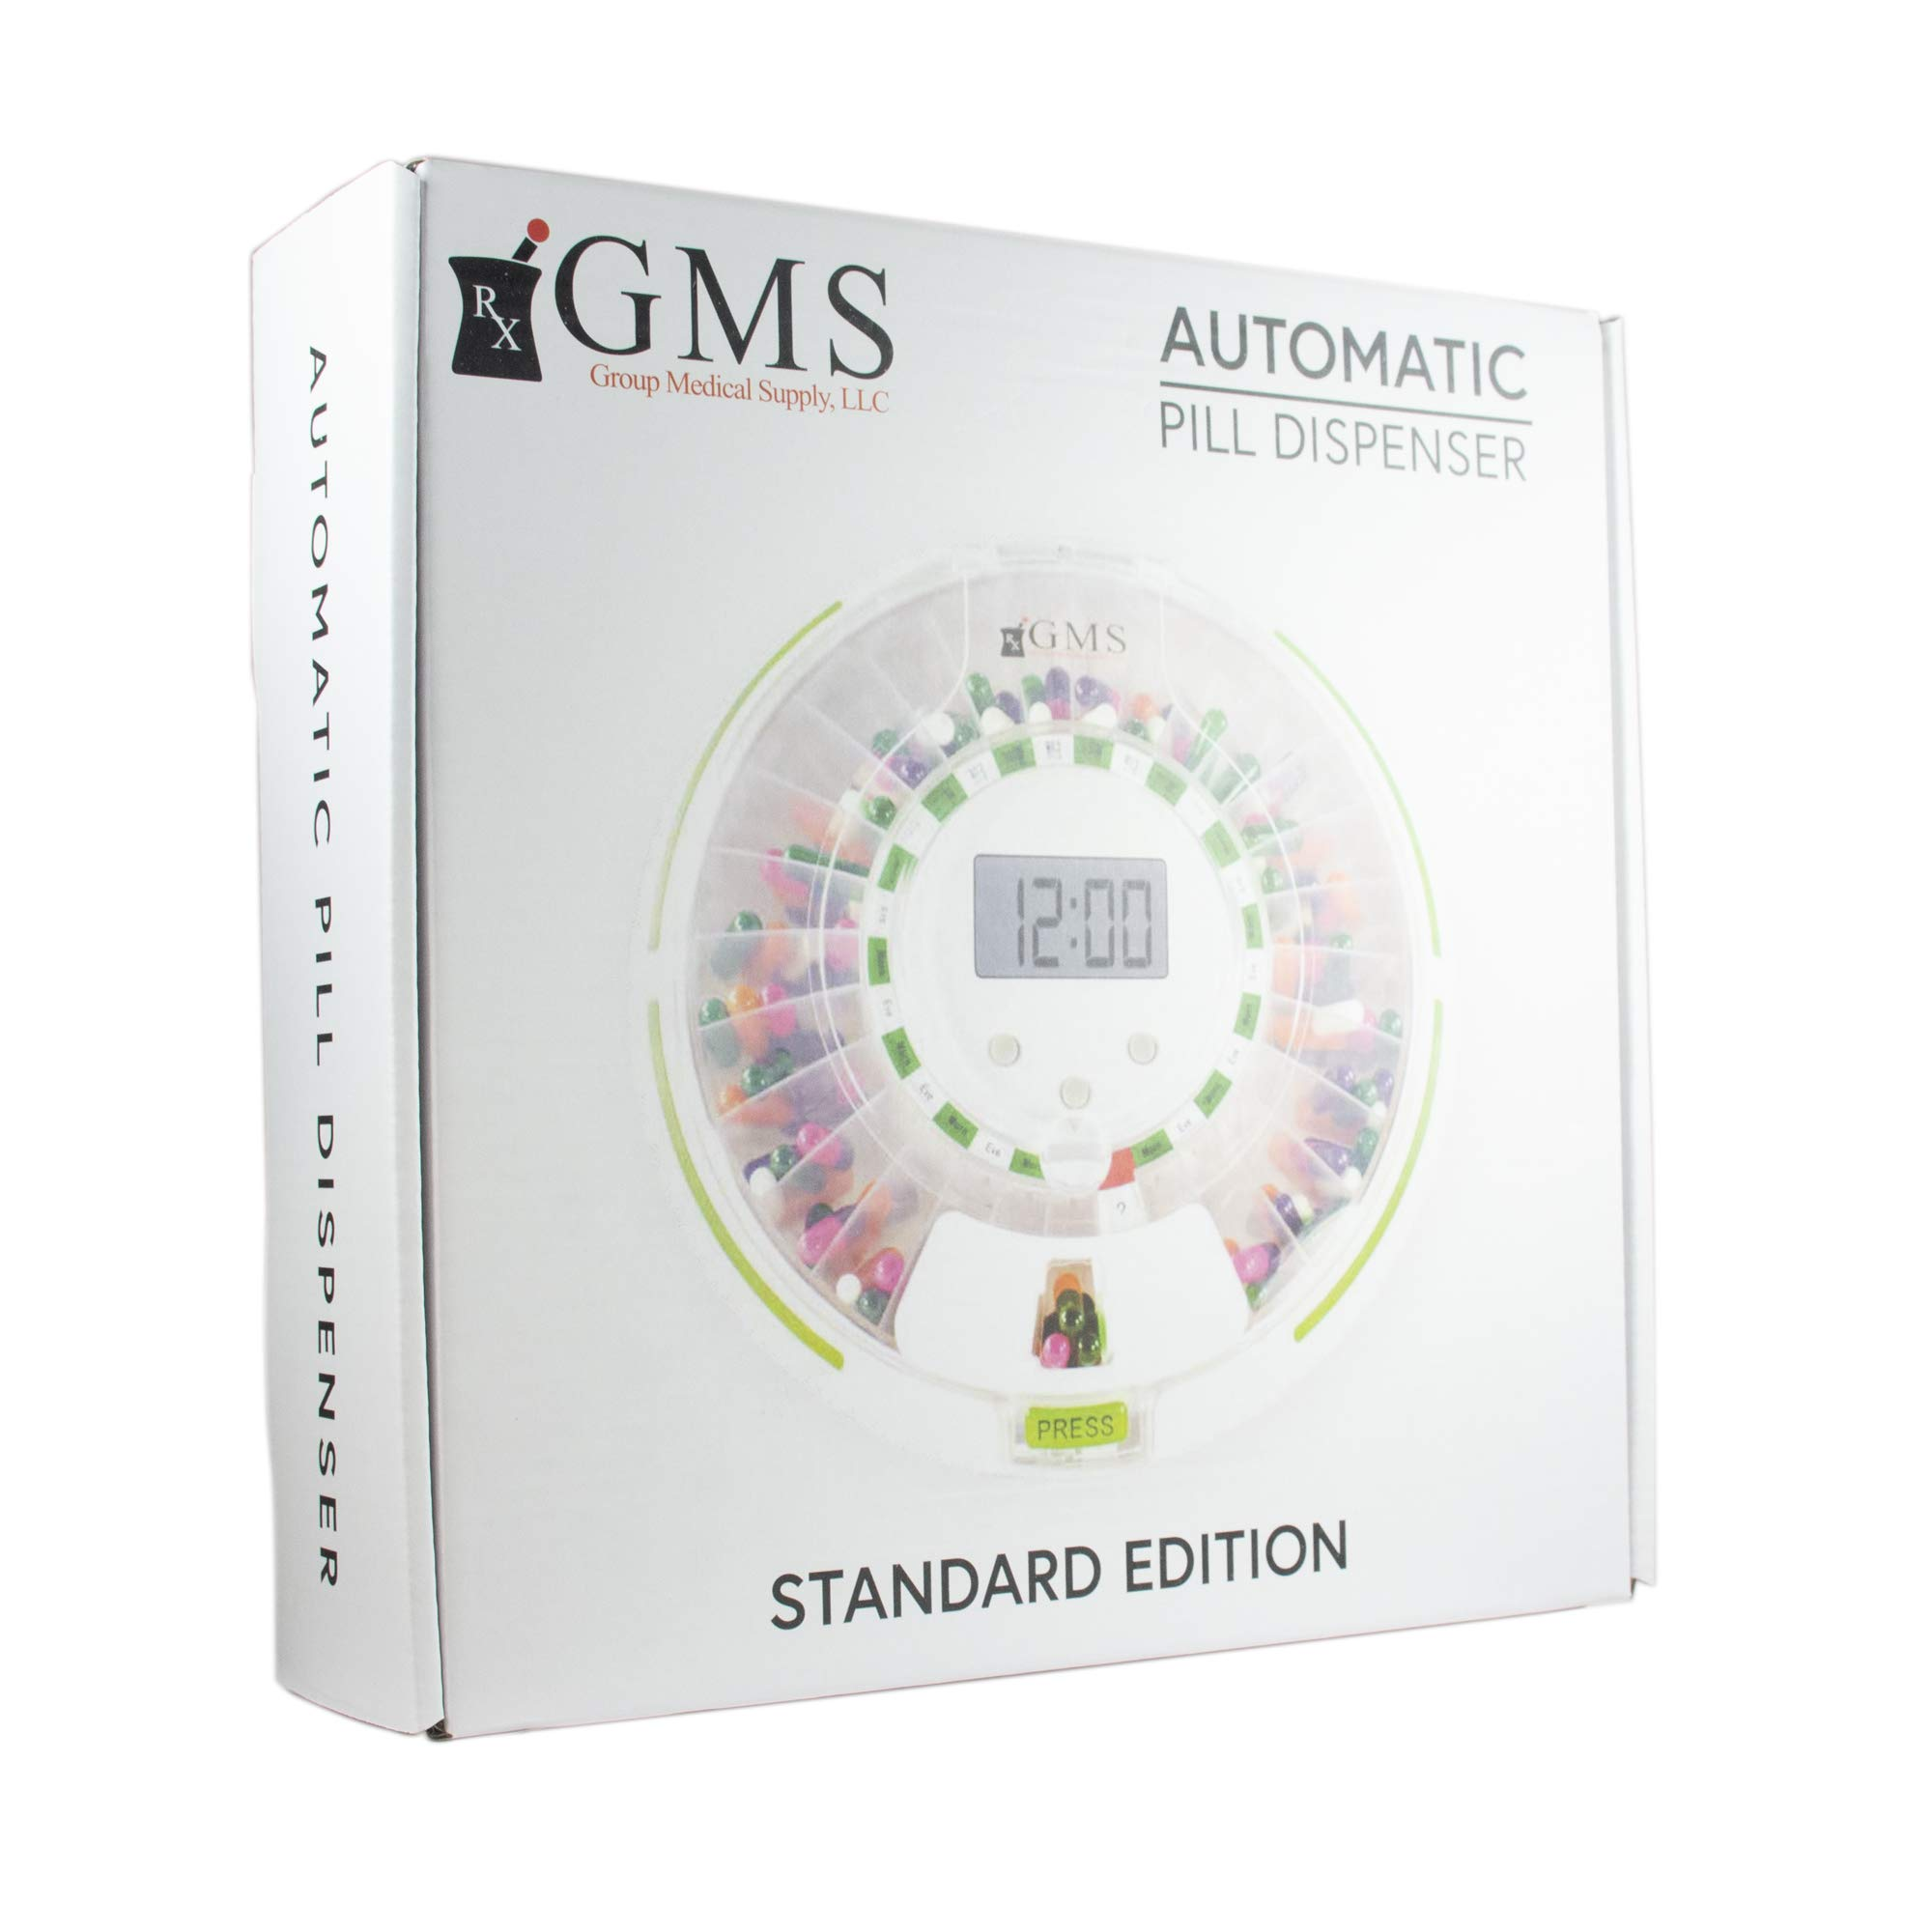 GMS Automatic Pill Dispenser 28 Day Automatic Pill Dispenser with Clear and Solid Lids (GMS Automatic Pill Dispenser, Tray, 6 Dosage Rings, Key) 1 Year Limited Warranty by GMS Group Medical Supply, LLC